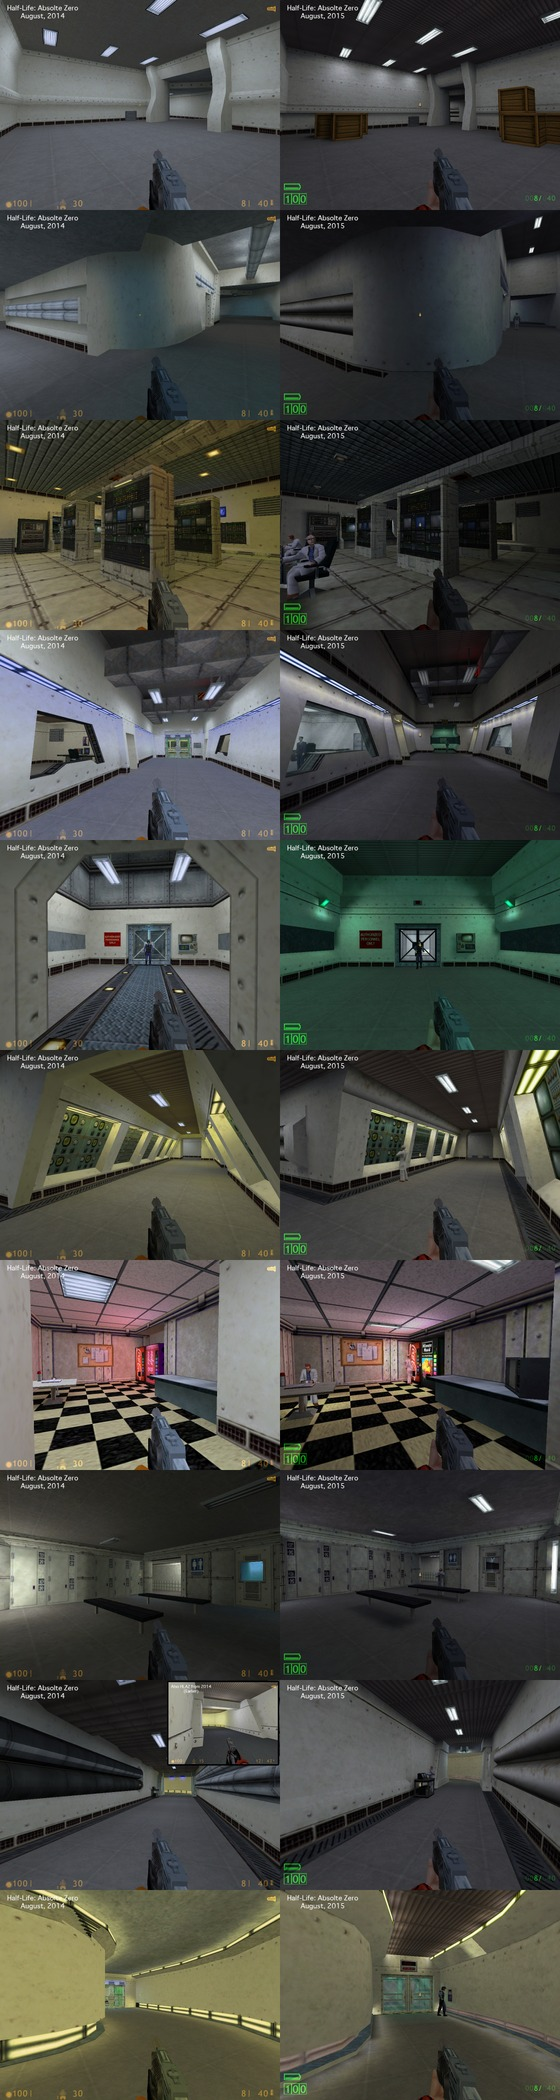 """The evolution of Half-Life: Absolute Zero (namely the first map in the mod.)  These images are quite long, so you will need to click onto them to see the full thing. Advised to open them into a new tab to see them at their original resolution.  2014 - Development starts picking up steam again, level design being headed by GaussGunner and myself. ZedMarine would be slowly be making a return during this era. 2015 - Zed would become level design lead again, GaussGunner would start taking a back seat and would eventually leave to pursue new artistic endeavors. We would finally drop the name """"Half-Life E3 1998"""" later in August and become """"Half-Life: Absolute Zero."""" Demo was planned to be released early 2016 and a full release to follow only a few months afterwards. Blue24 would join the team early that year, marking the retirement of the 2010-2012 code. 2016 - Reality sinks in, we knew Half-Life: Absolute Zero was not in the state to ship early that year as a demo. Various maps that were functioning months prior were no longer playable and discussion on whatever or not development should be restarted again began. We would be able to salvage the maps, but disaster struct once more. The April build that sparked the discussion of rebooting development ended up leaking to the public and everyone could see the state of HLAZ as of April of 2016. 2017 - Things start to start looking up for the mod! Pre-demo testing went good and it was being well received among play testers. A few odd decisions would take place in the month prior to the demo shipping, but overall the Demo was overall well received.  2018 - Things were looking up for the project, everything seemed to be going as planned... Until, well, you know the rest of the story."""